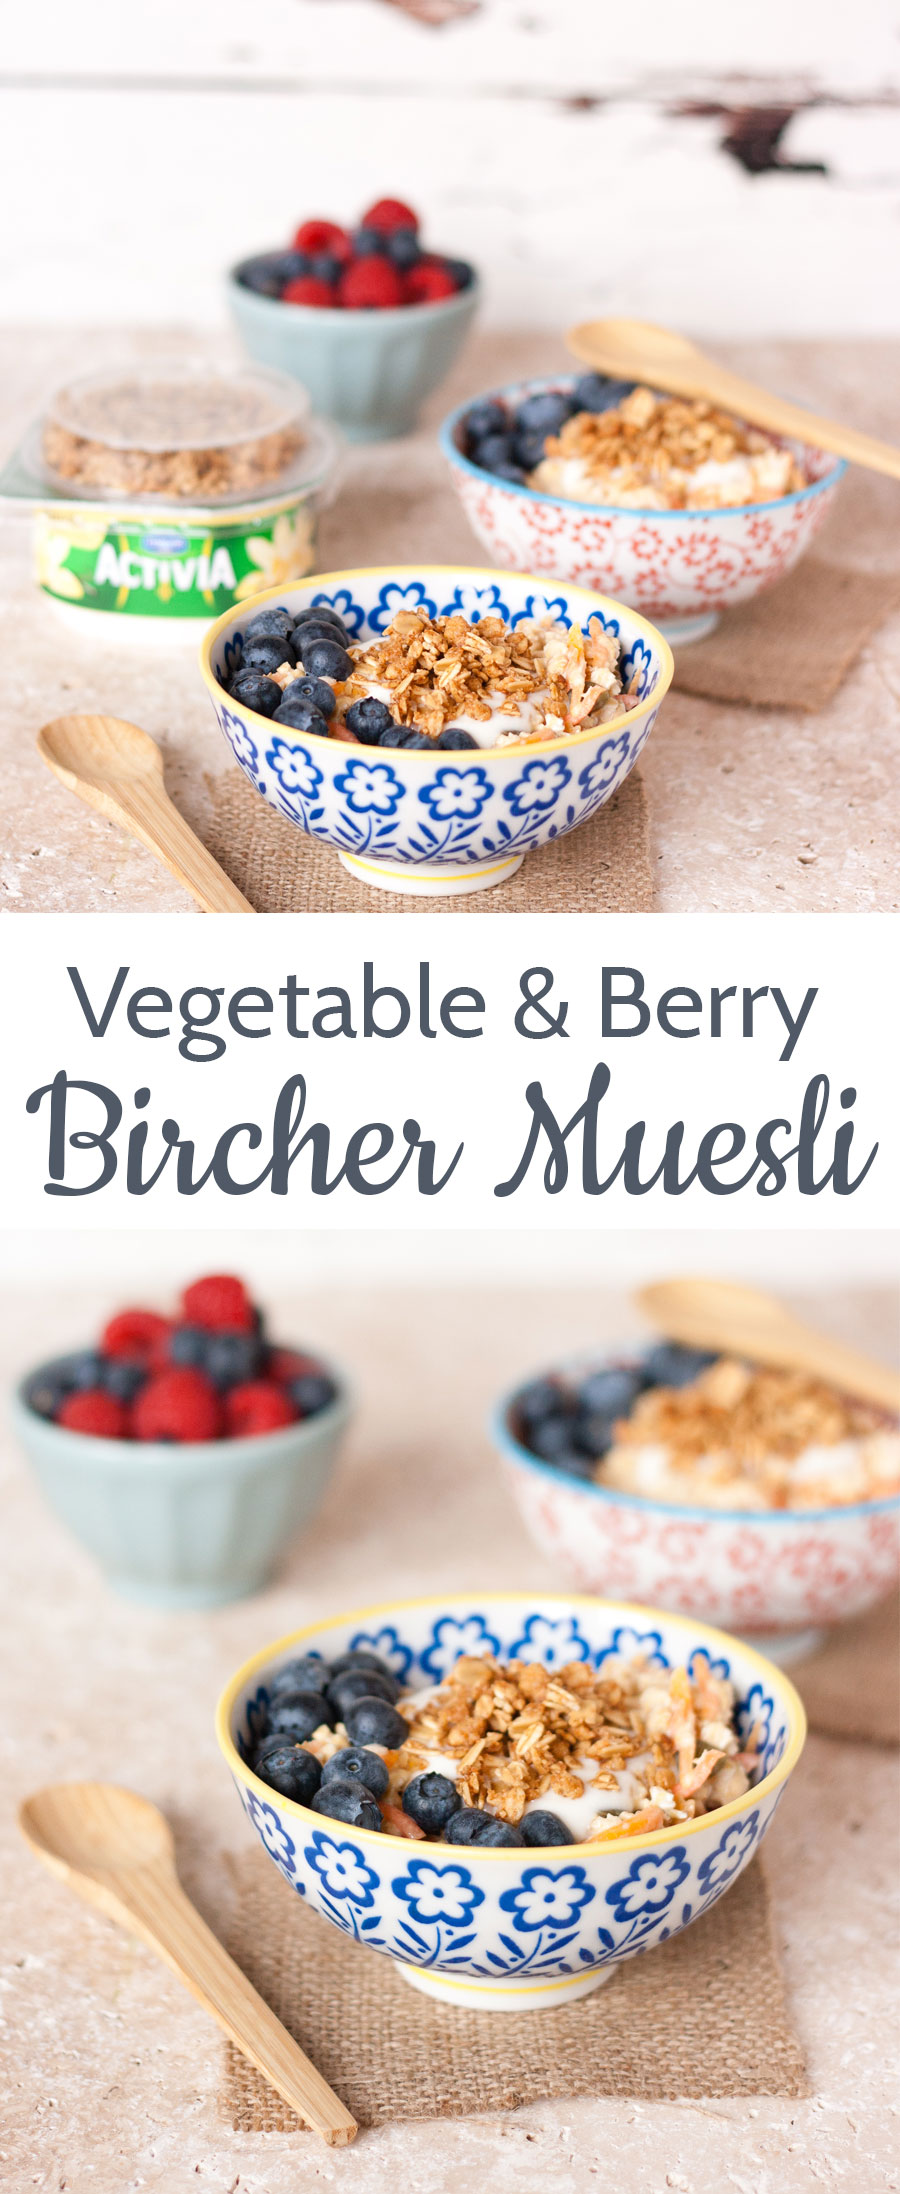 Swapping the grated apple in bircher muesli for carrots is an easy and delicious way to get more vegetables into your diet.